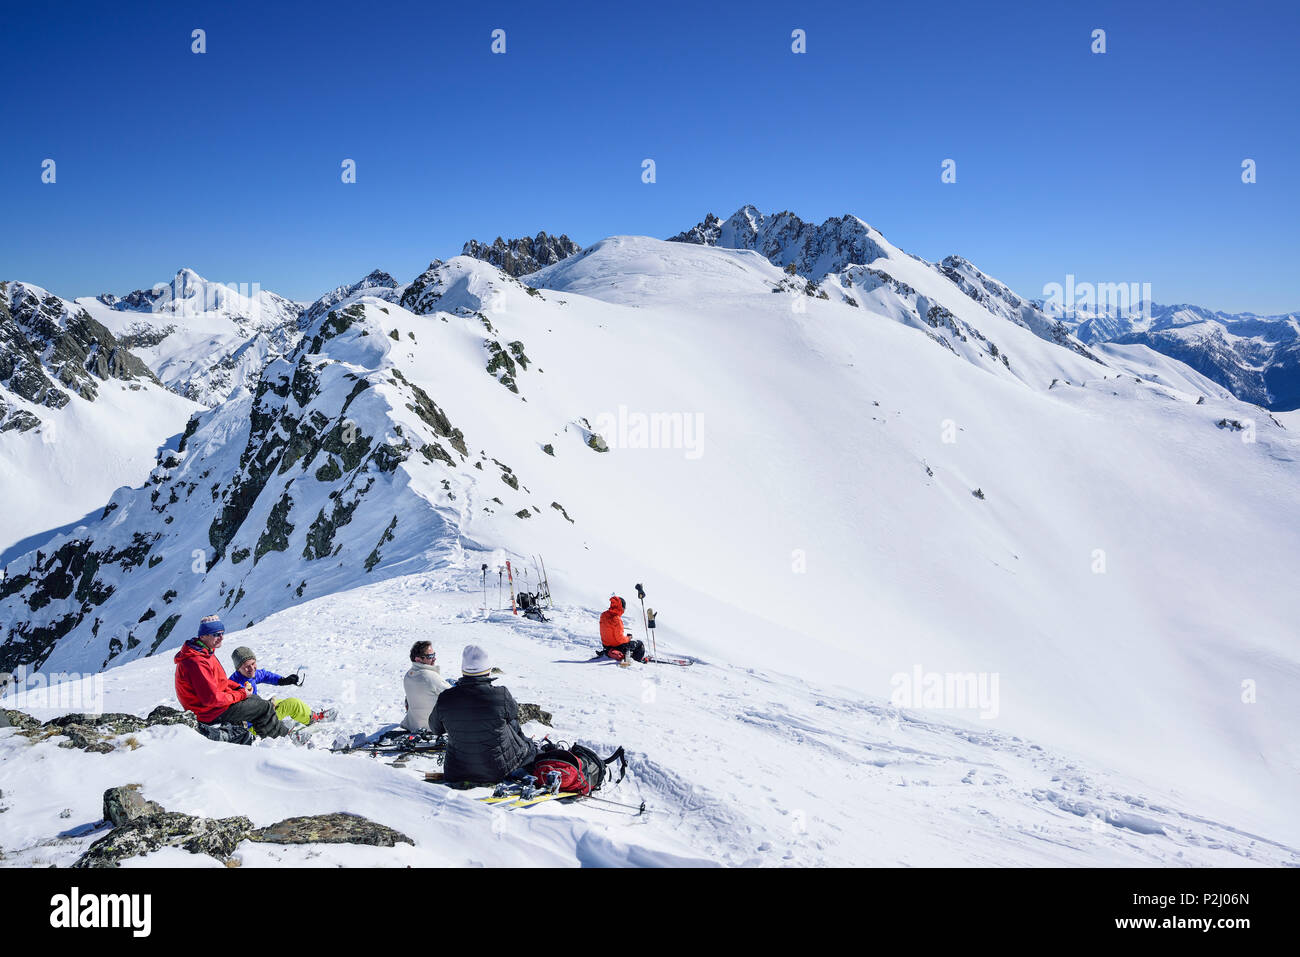 Several persons back-country skiing having a break at Passo Croce, Passo Croce, Valle Maira, Cottian Alps, Piedmont, Italy - Stock Image